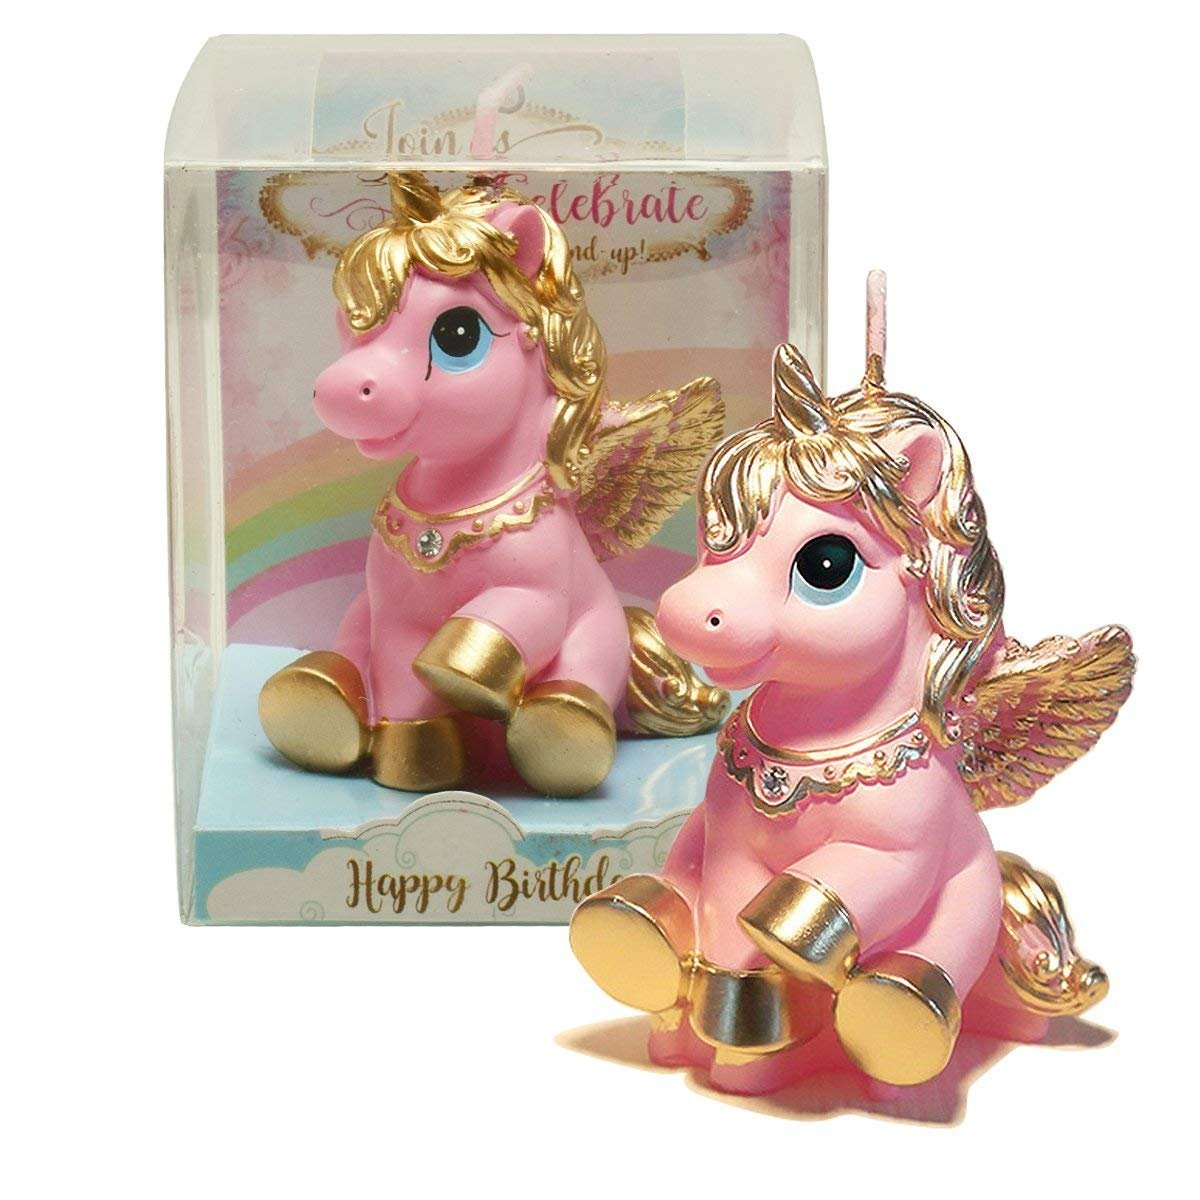 TBJSM Super Cute Gold Fly Unicorn Cake Cupcake Topper Birthday Gifts Wish Candle Wedding Party Decorations (Pink)